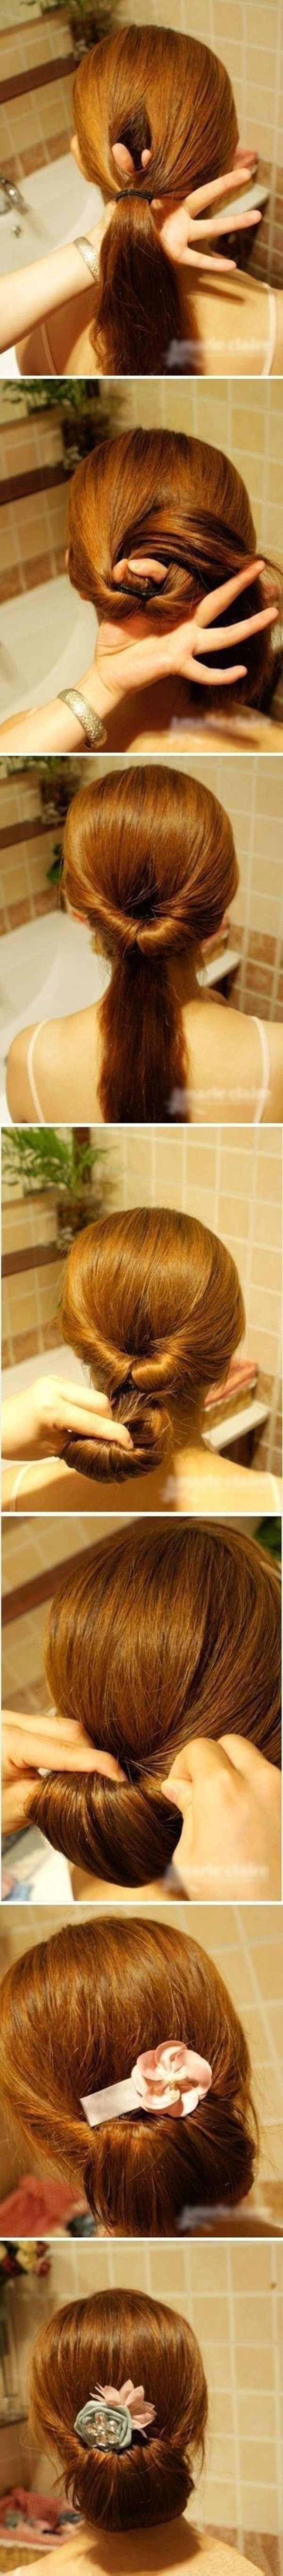 Easy Hairstyles For School (3)